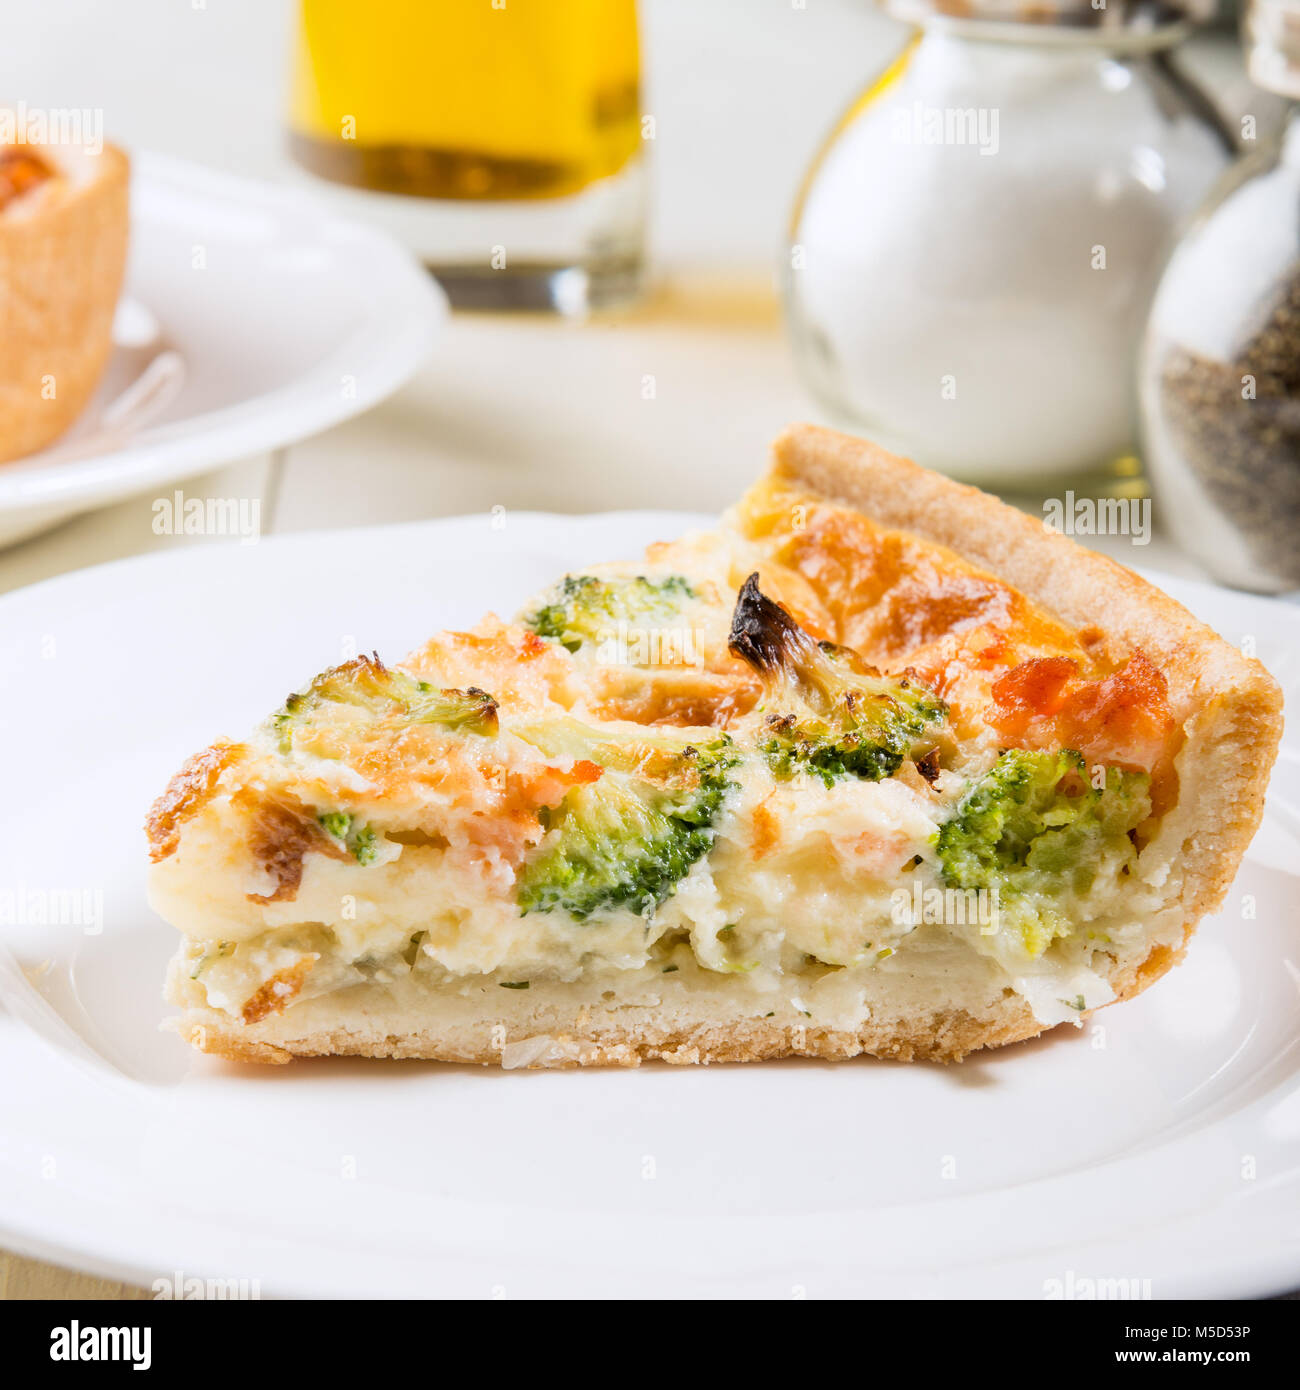 Classic salmon and broccoli quiche made from shortcrust pastry with broccoli florets and smoked salmon in a creamy Stock Photo